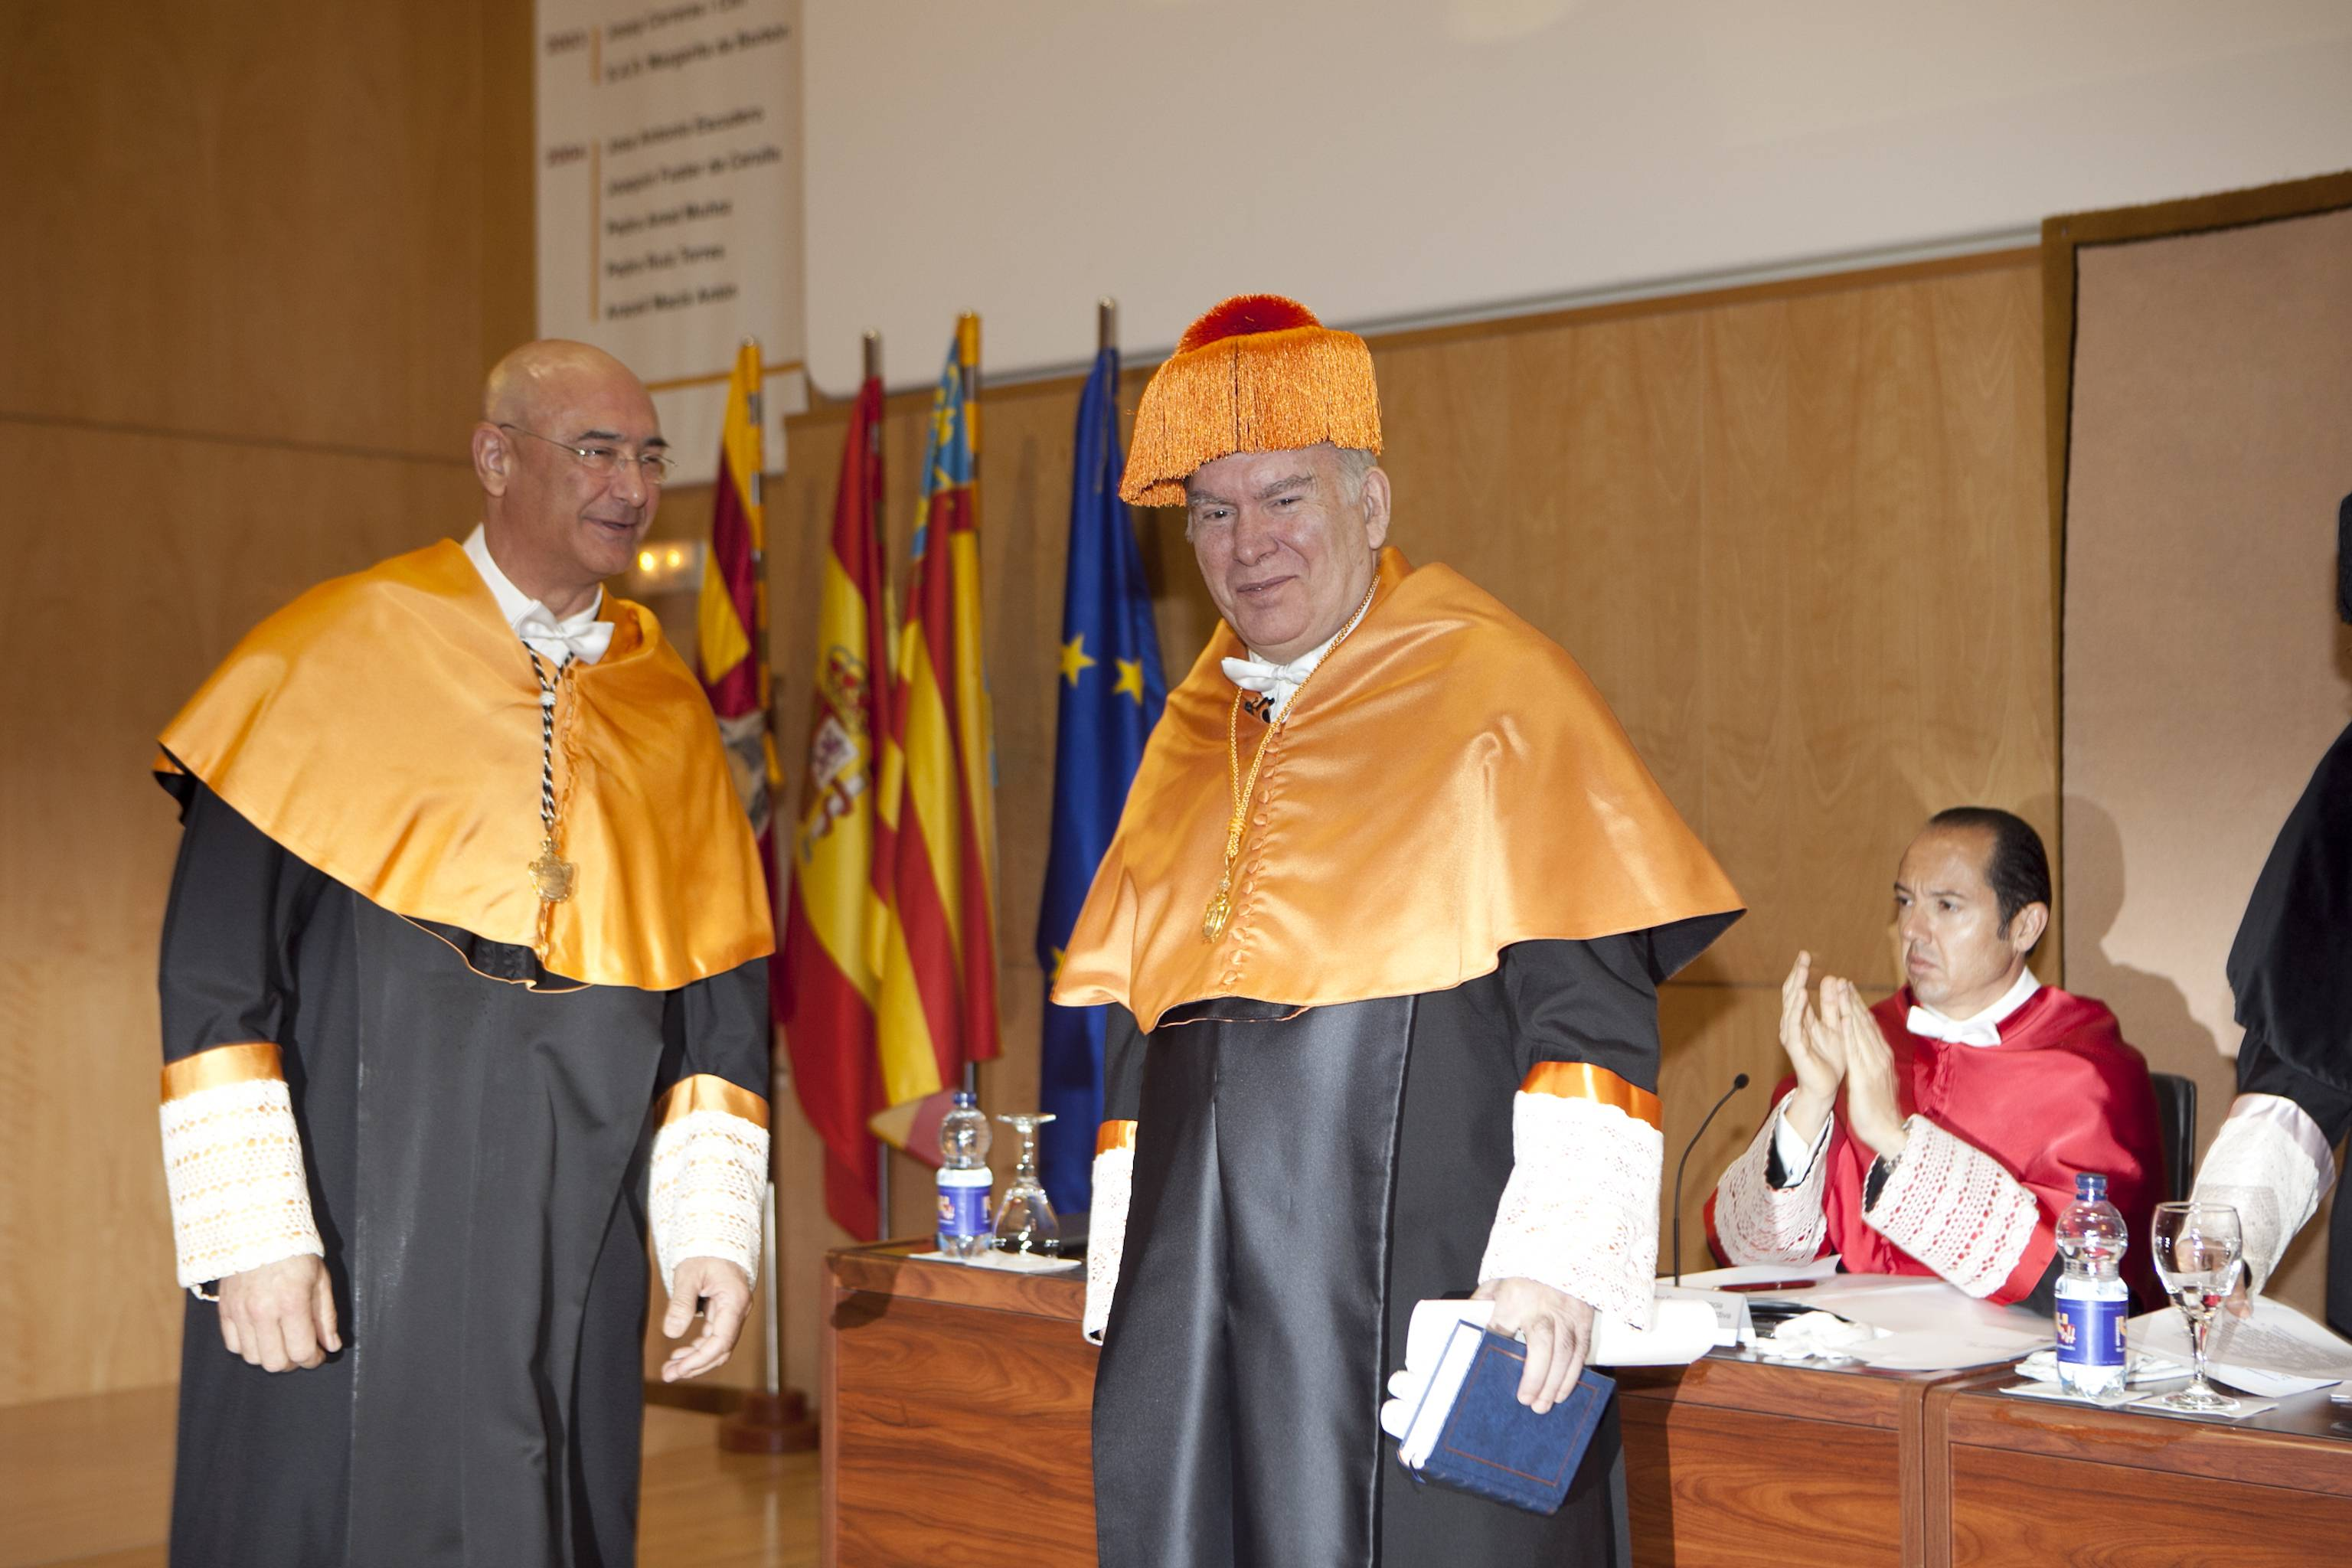 doctor-honoris-causa-luis-gamir_mg_0808.jpg